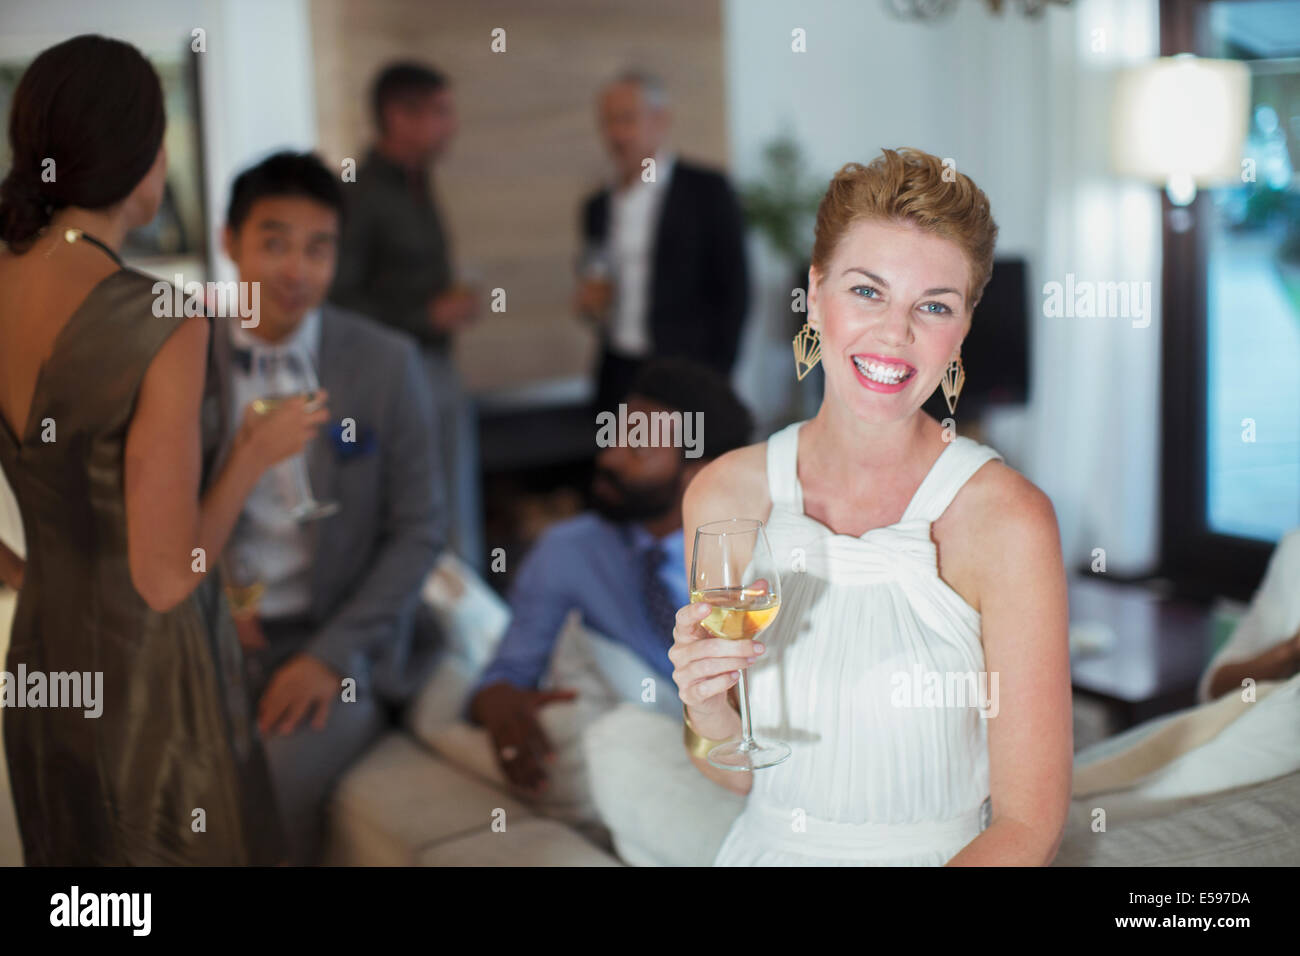 Woman smiling on sofa at party - Stock Image